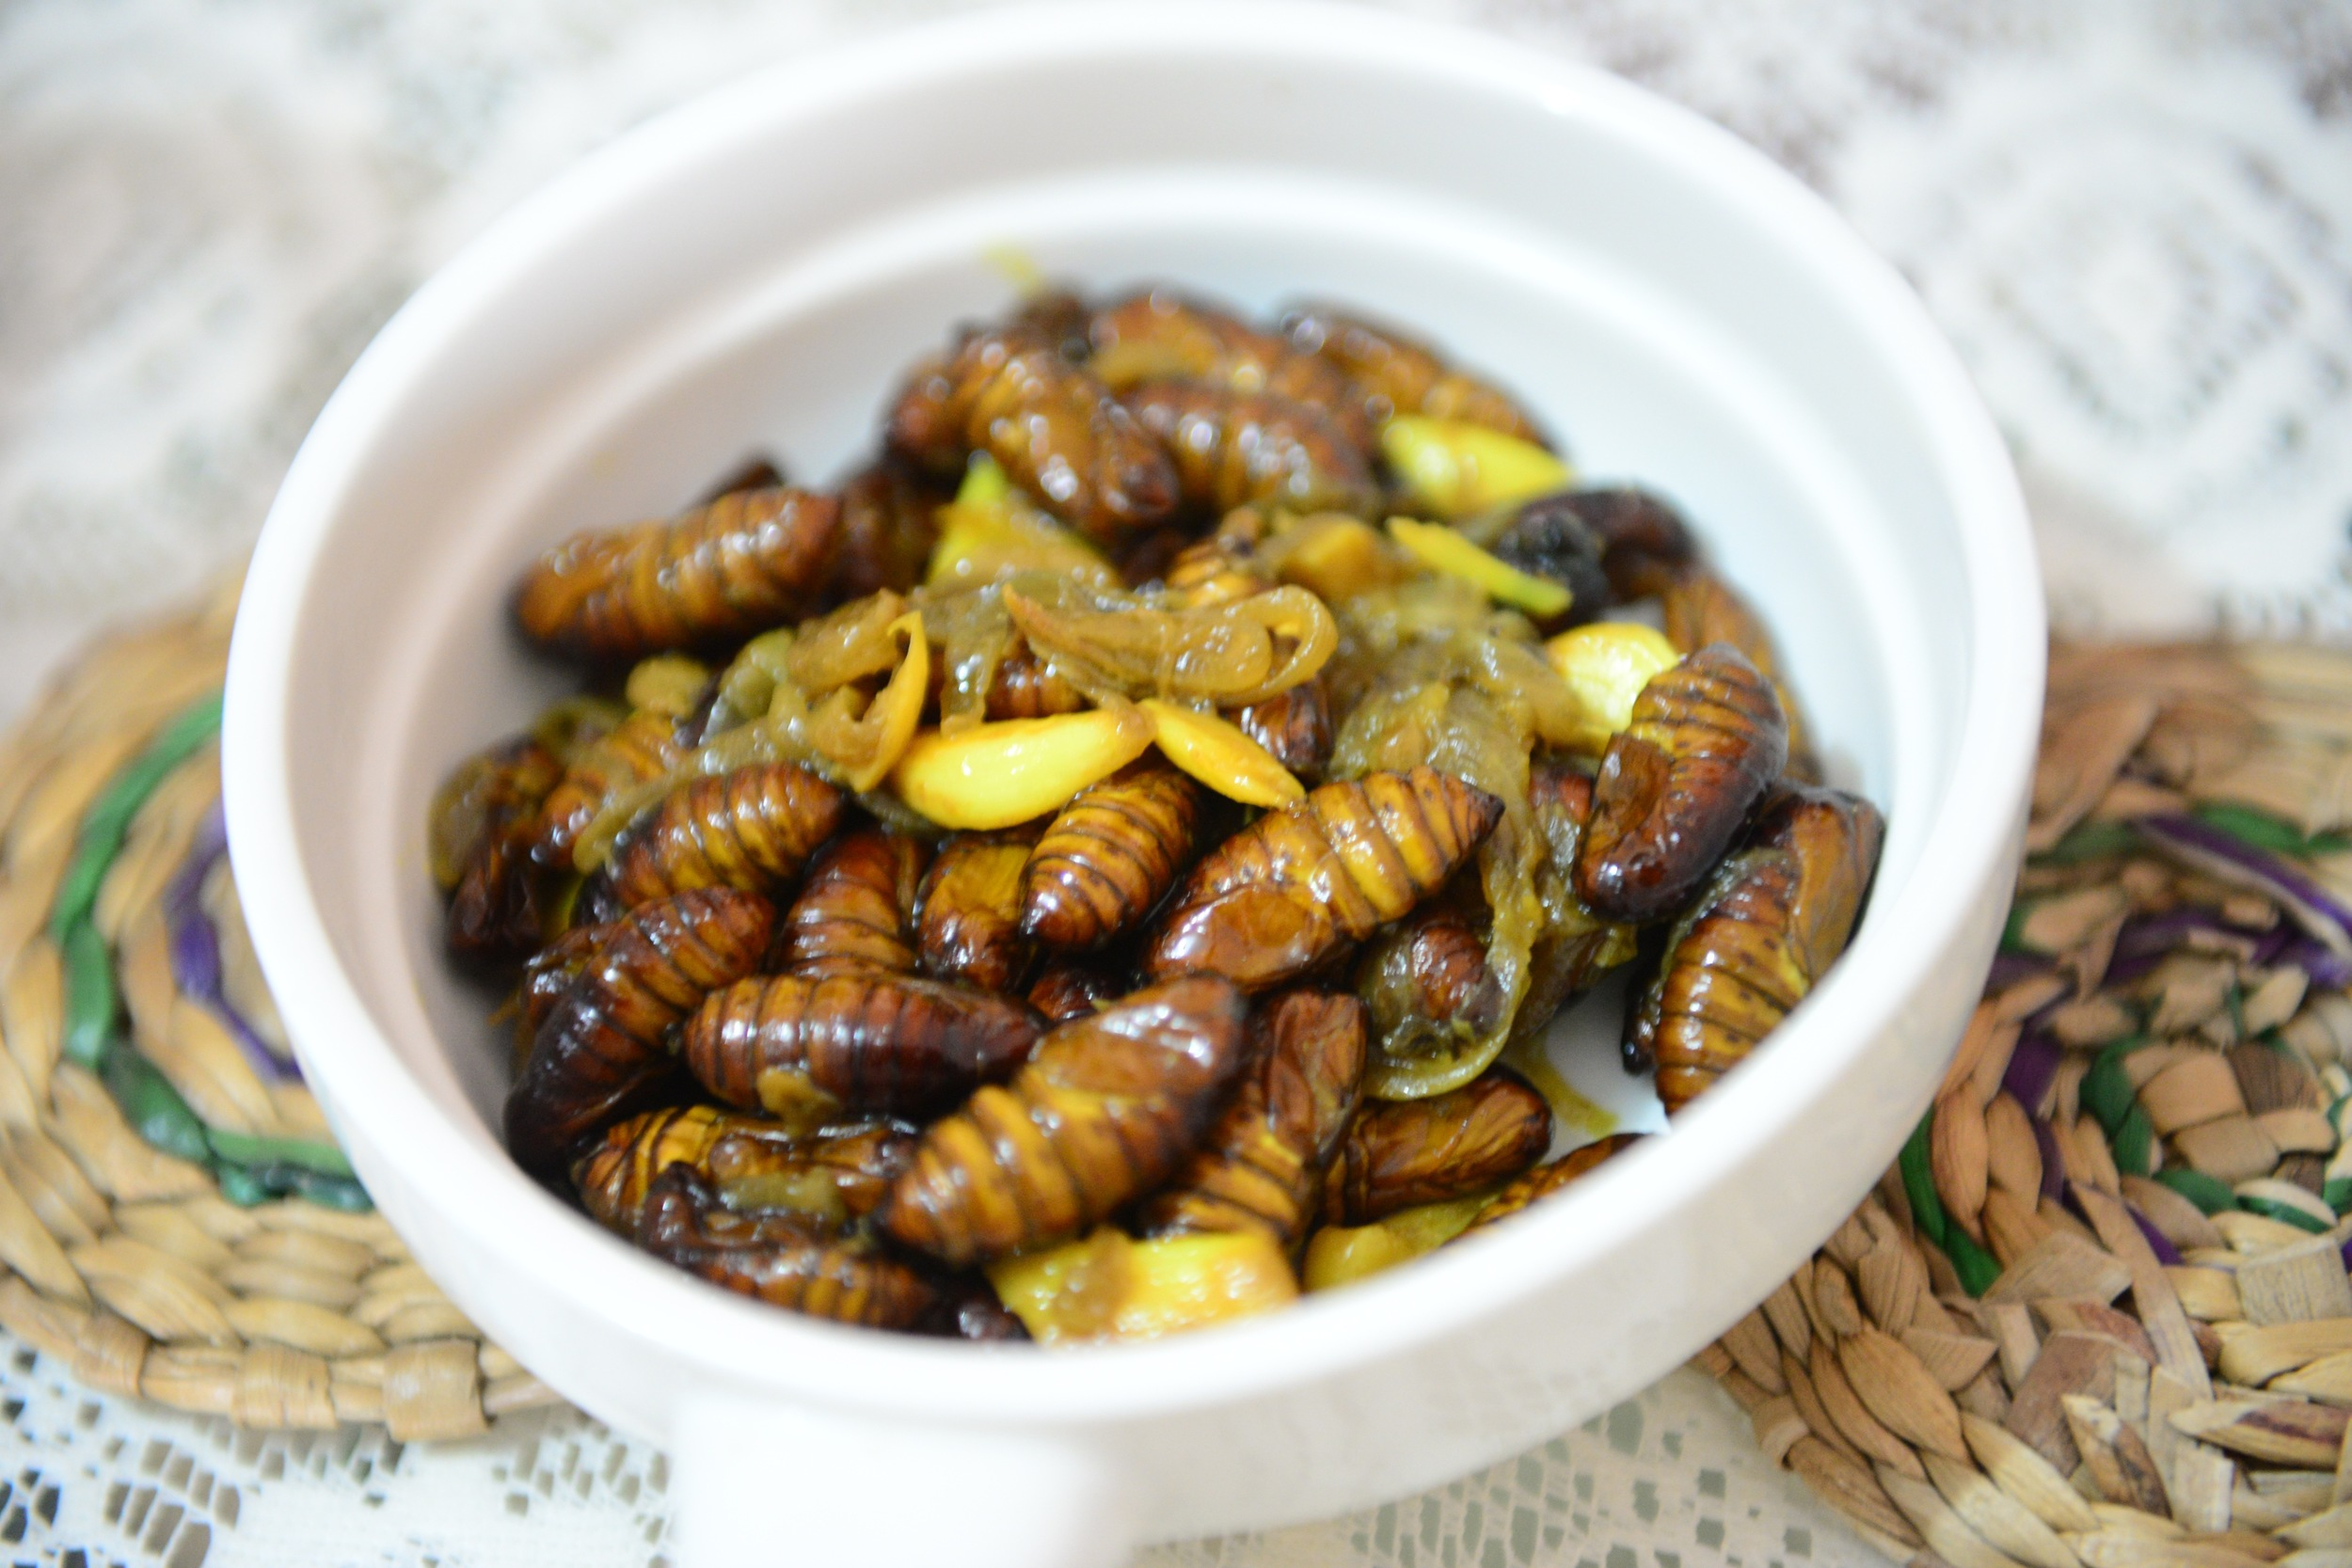 New harvest silkworms cooked with onions and garlic